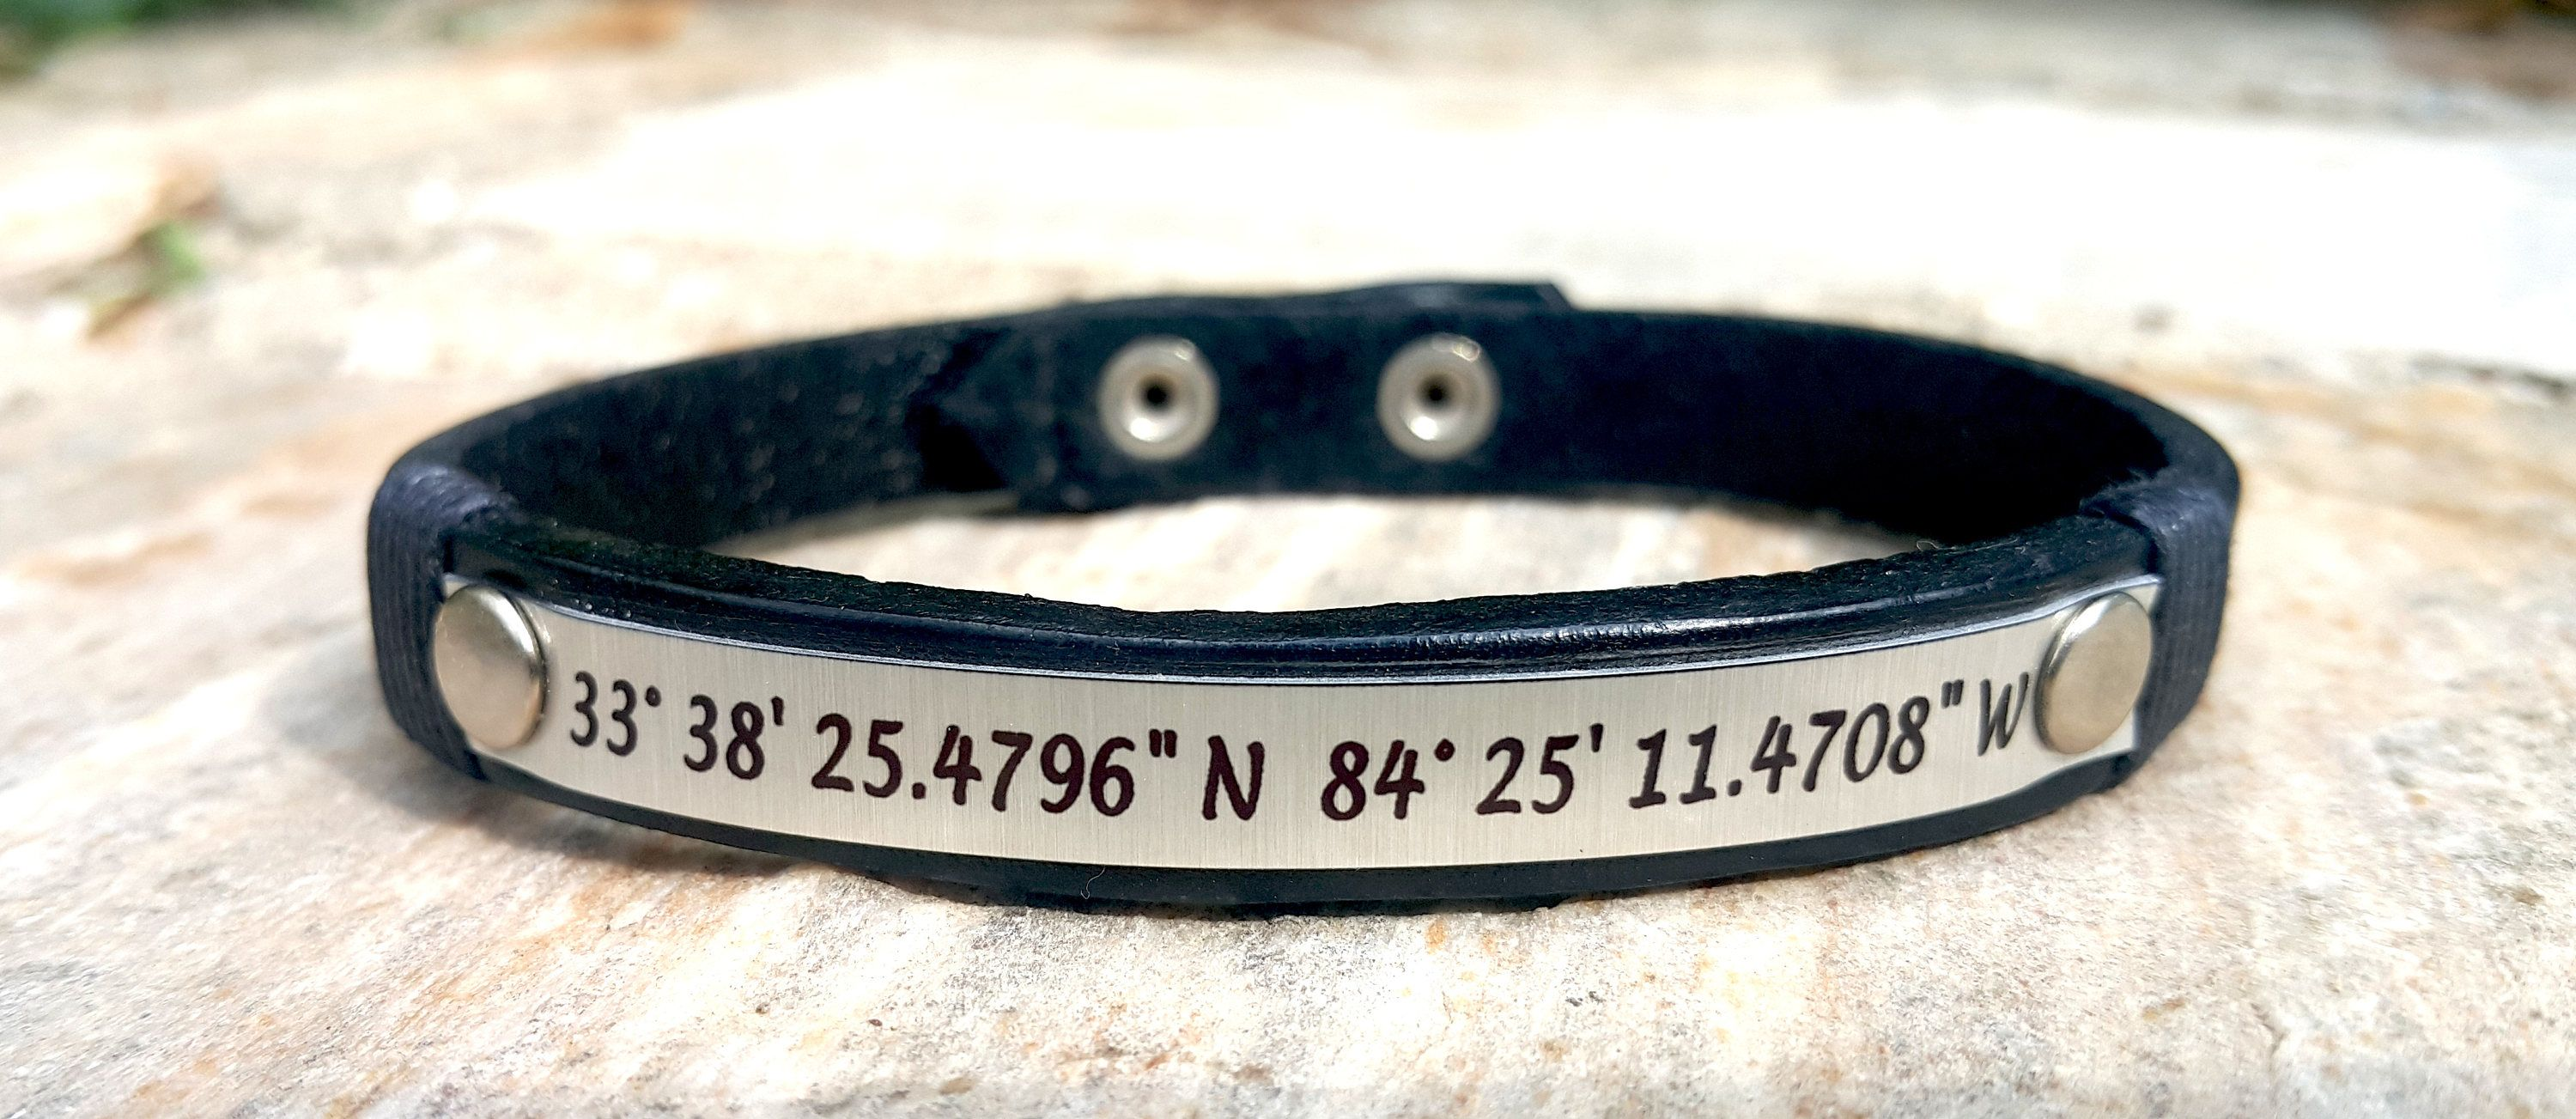 coordinate bracelet leather rawhide custom customs product